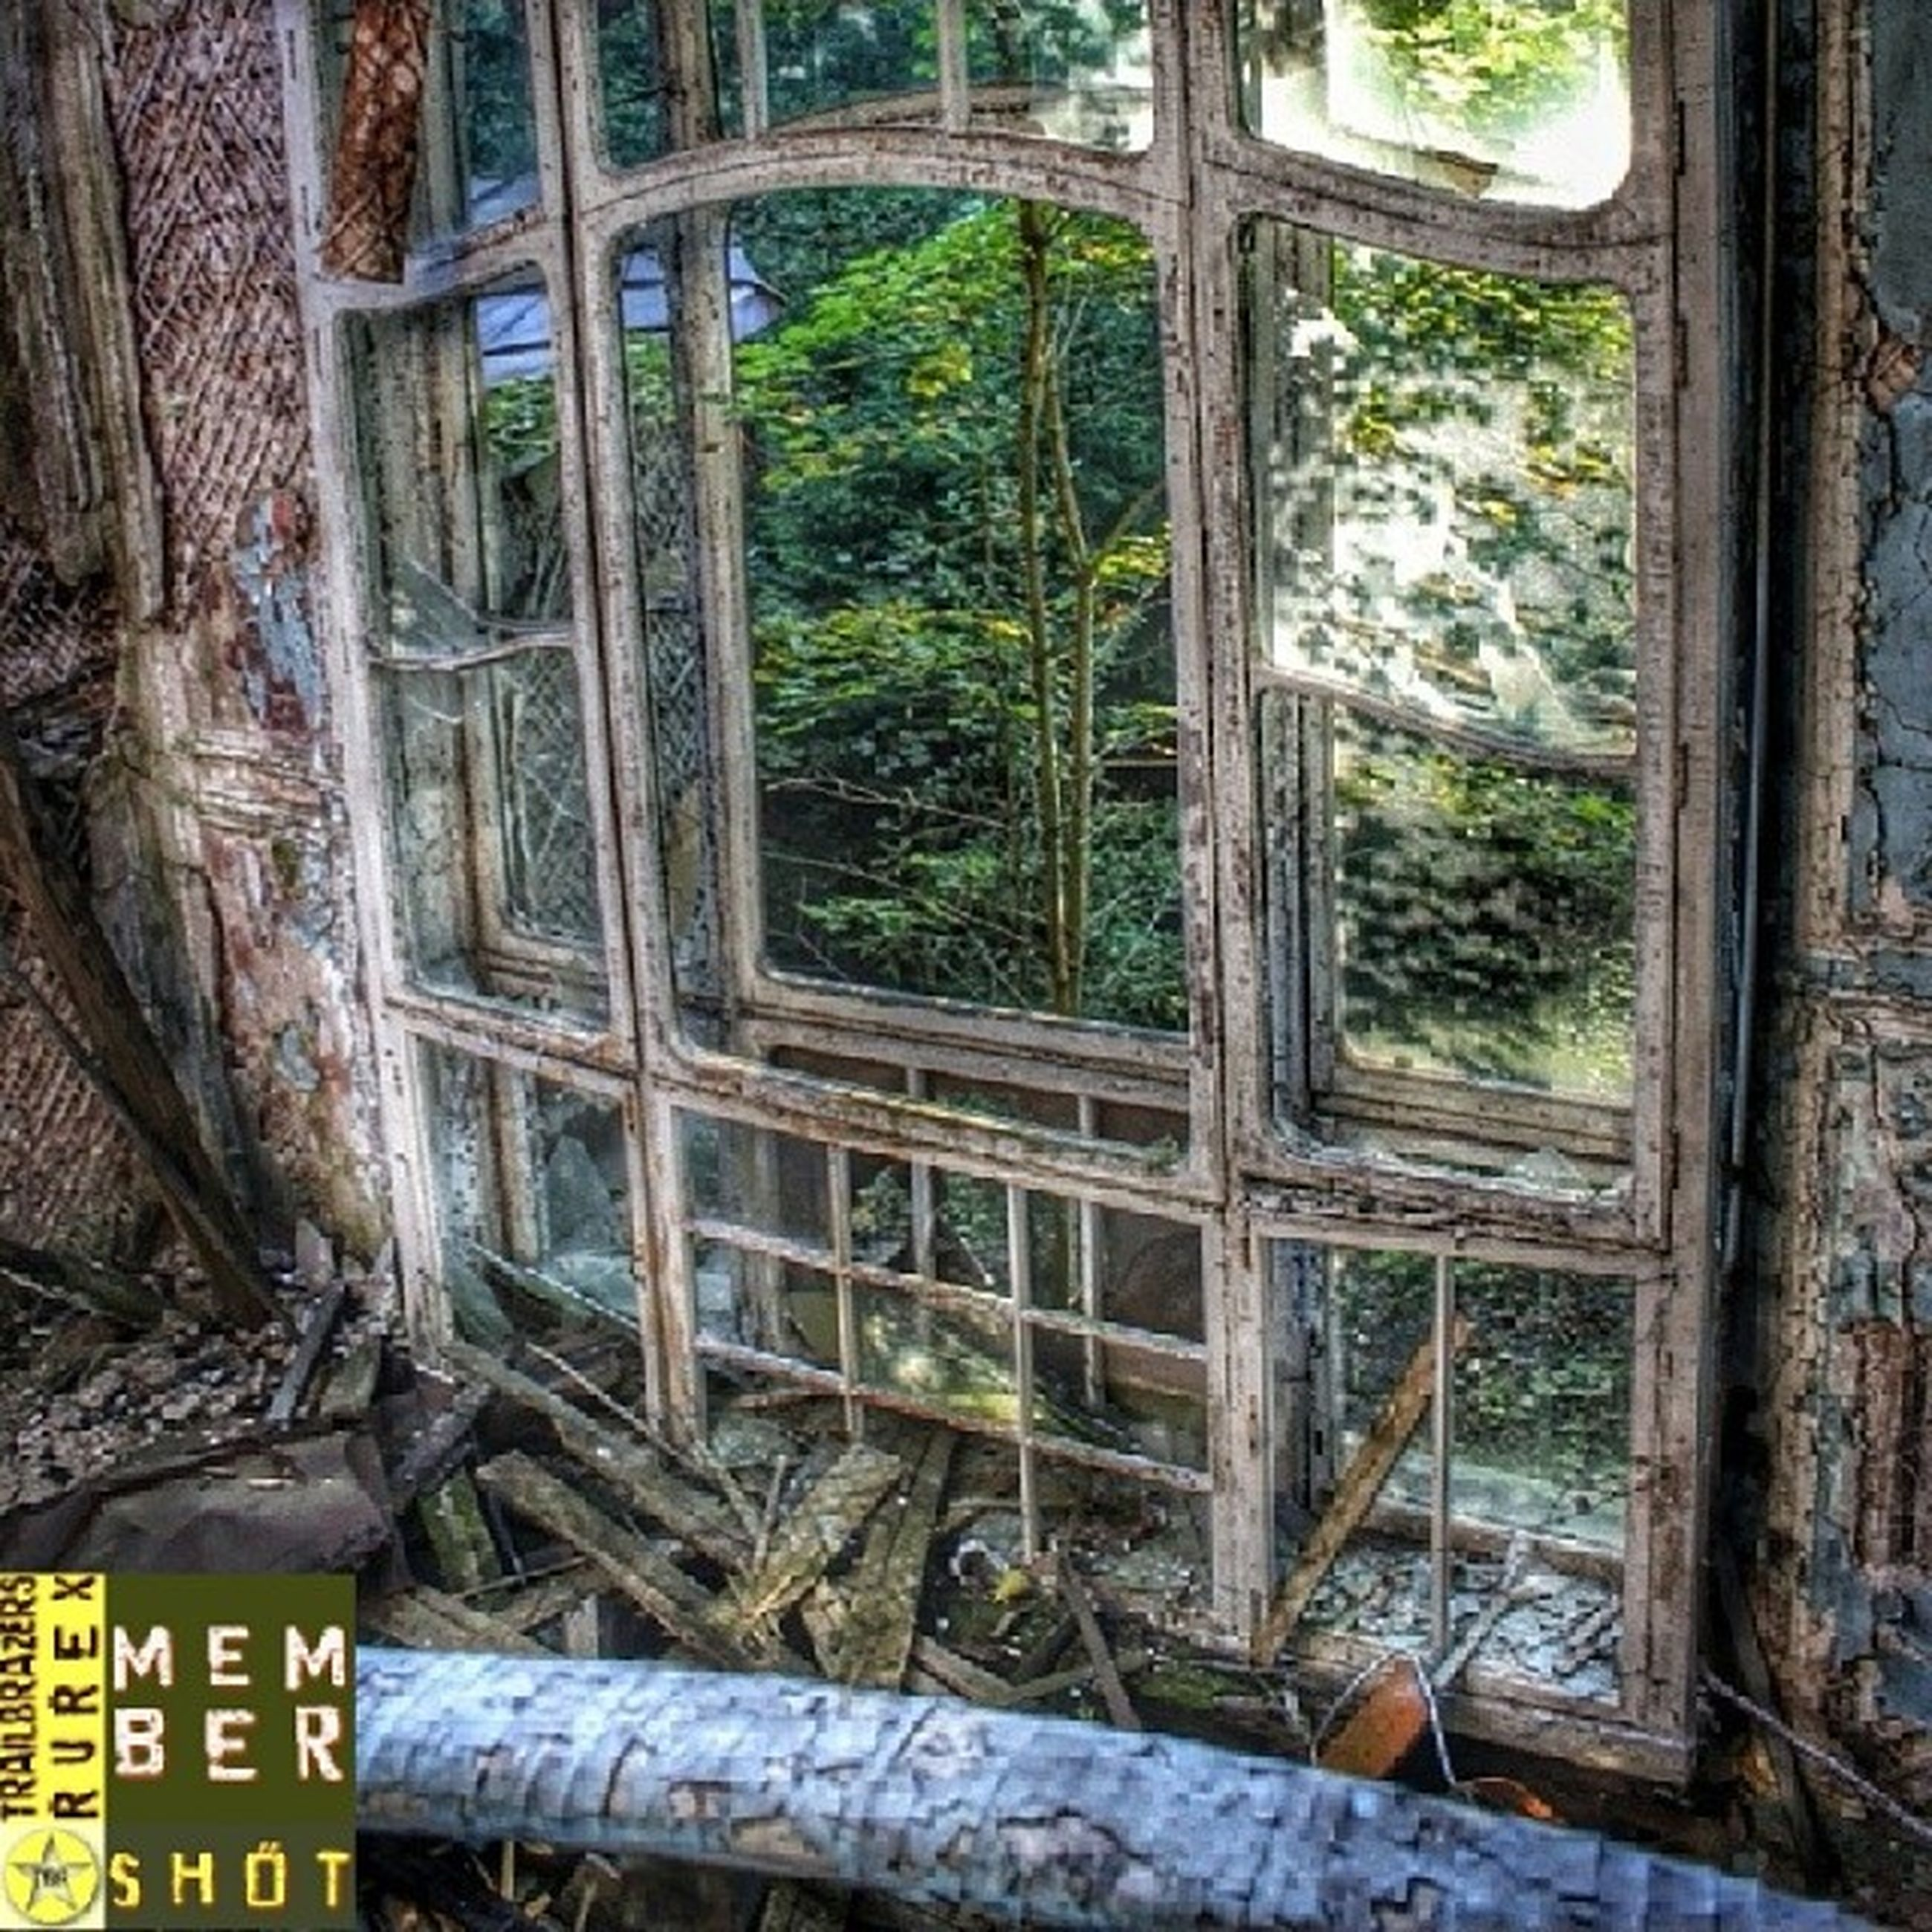 built structure, tree, architecture, old, wood - material, abandoned, building exterior, text, day, obsolete, window, weathered, damaged, no people, house, wall - building feature, run-down, outdoors, railing, deterioration